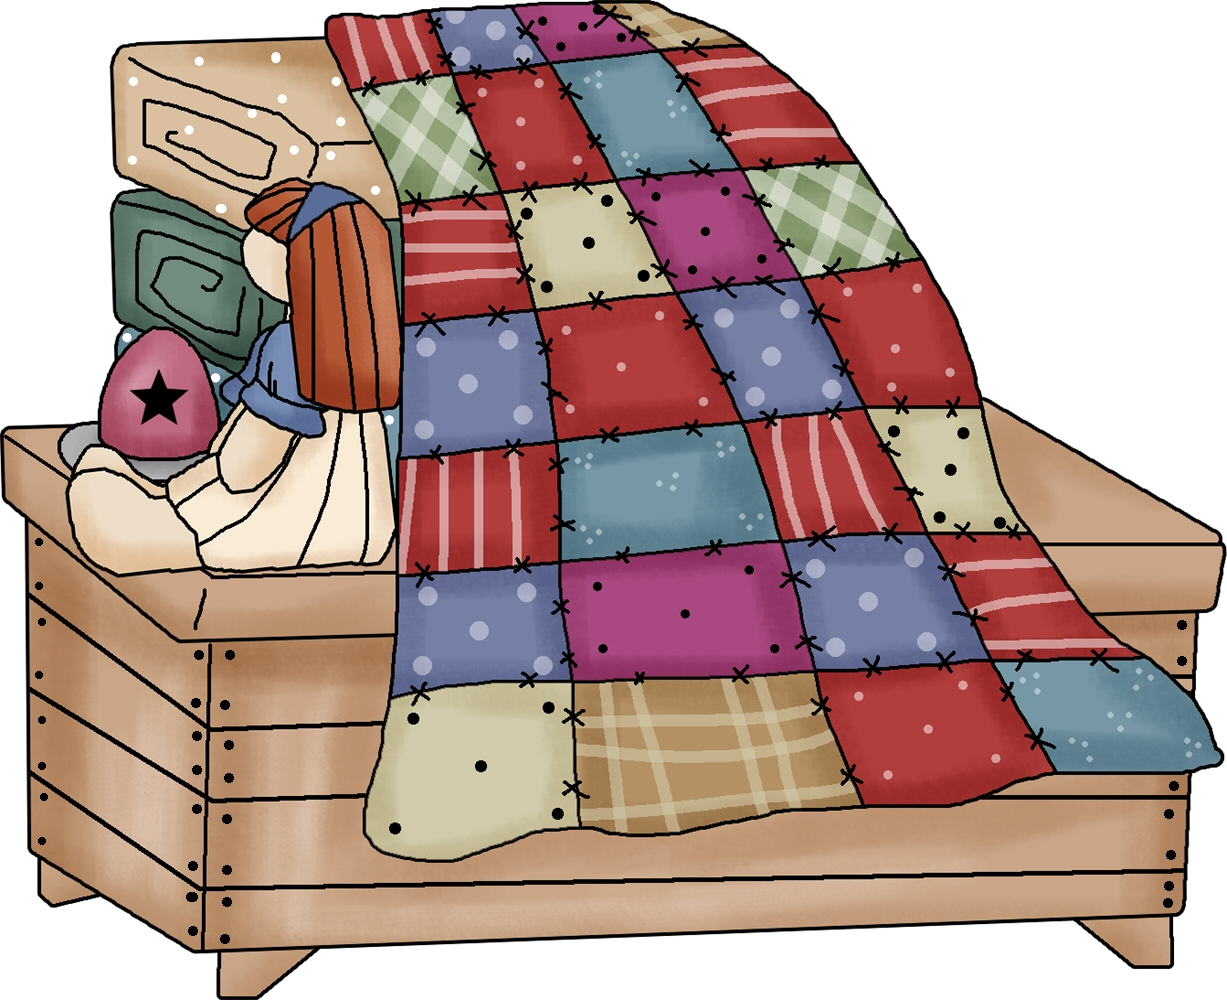 Quilting clipart sewing basket. Free download clip art